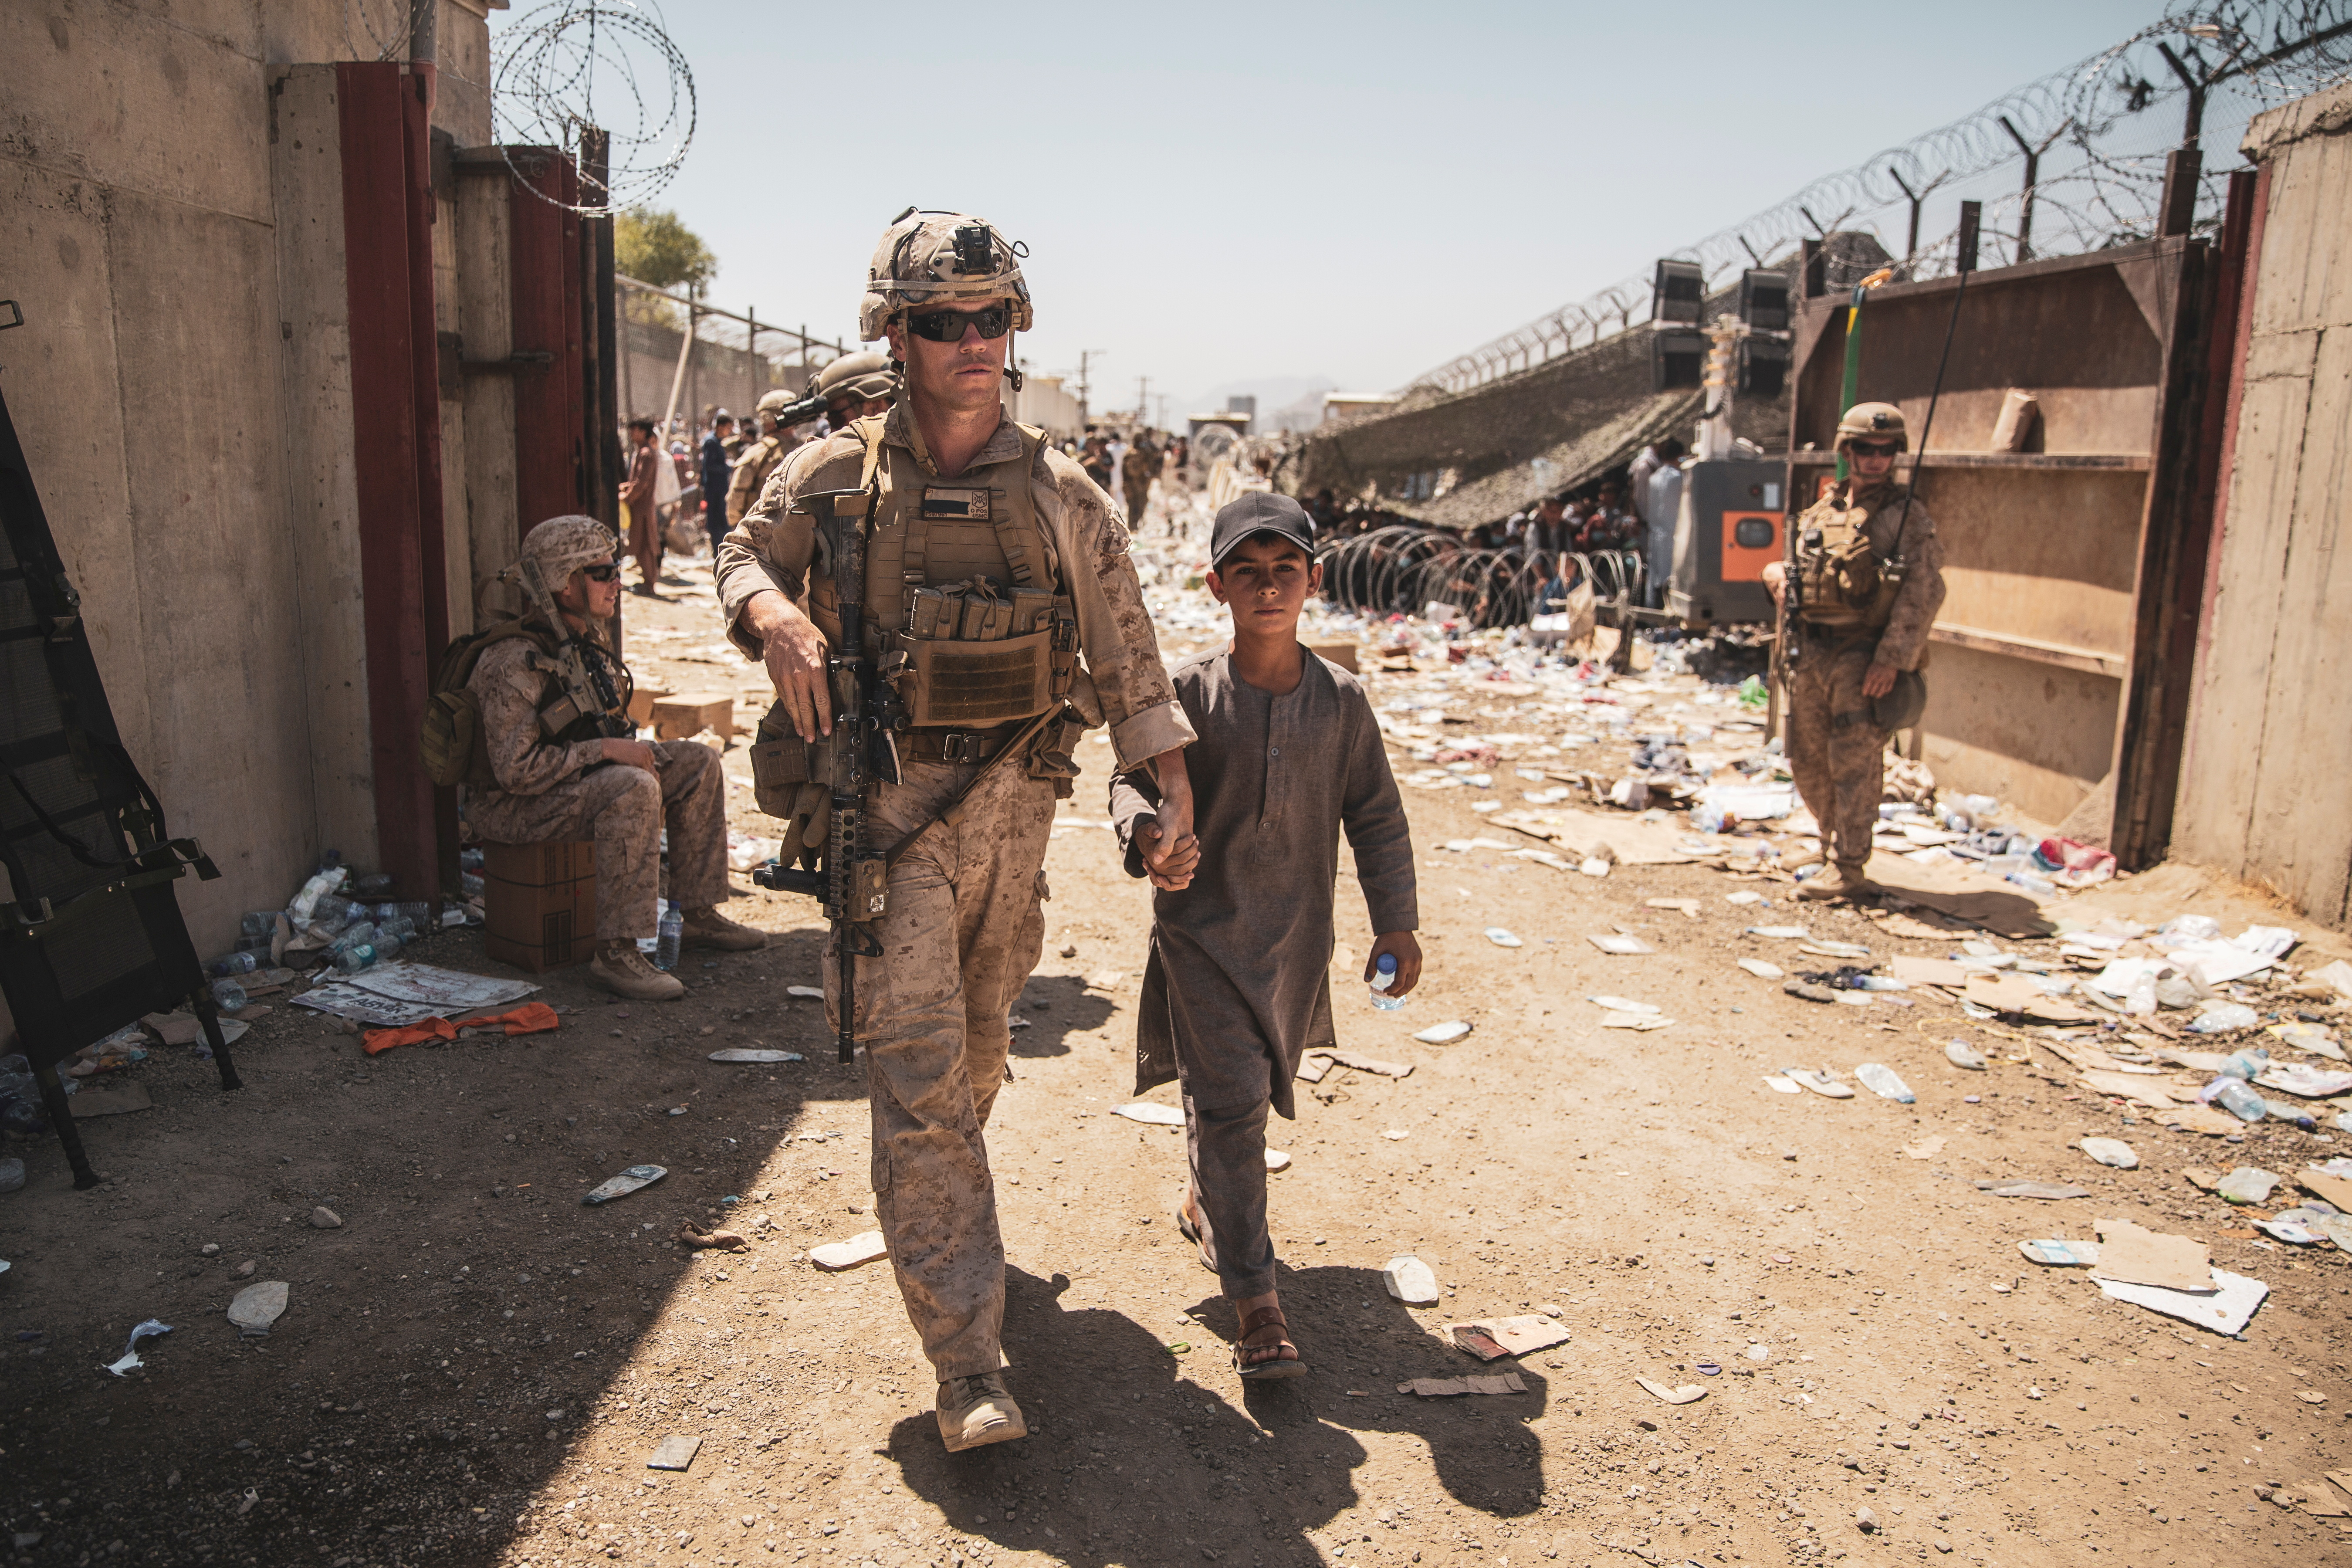 A U.S. Marine with the Special Purpose Marine Air-Ground Task Force-Crisis Response-Central Command (SPMAGTF-CR-CC) escorts a child to his family during an evacuation at Hamid Karzai International Airport in Kabul, Afghanistan, August 24, 2021.   Sgt. Samuel Ruiz/U.S. Marine Corps/Handout via REUTERS